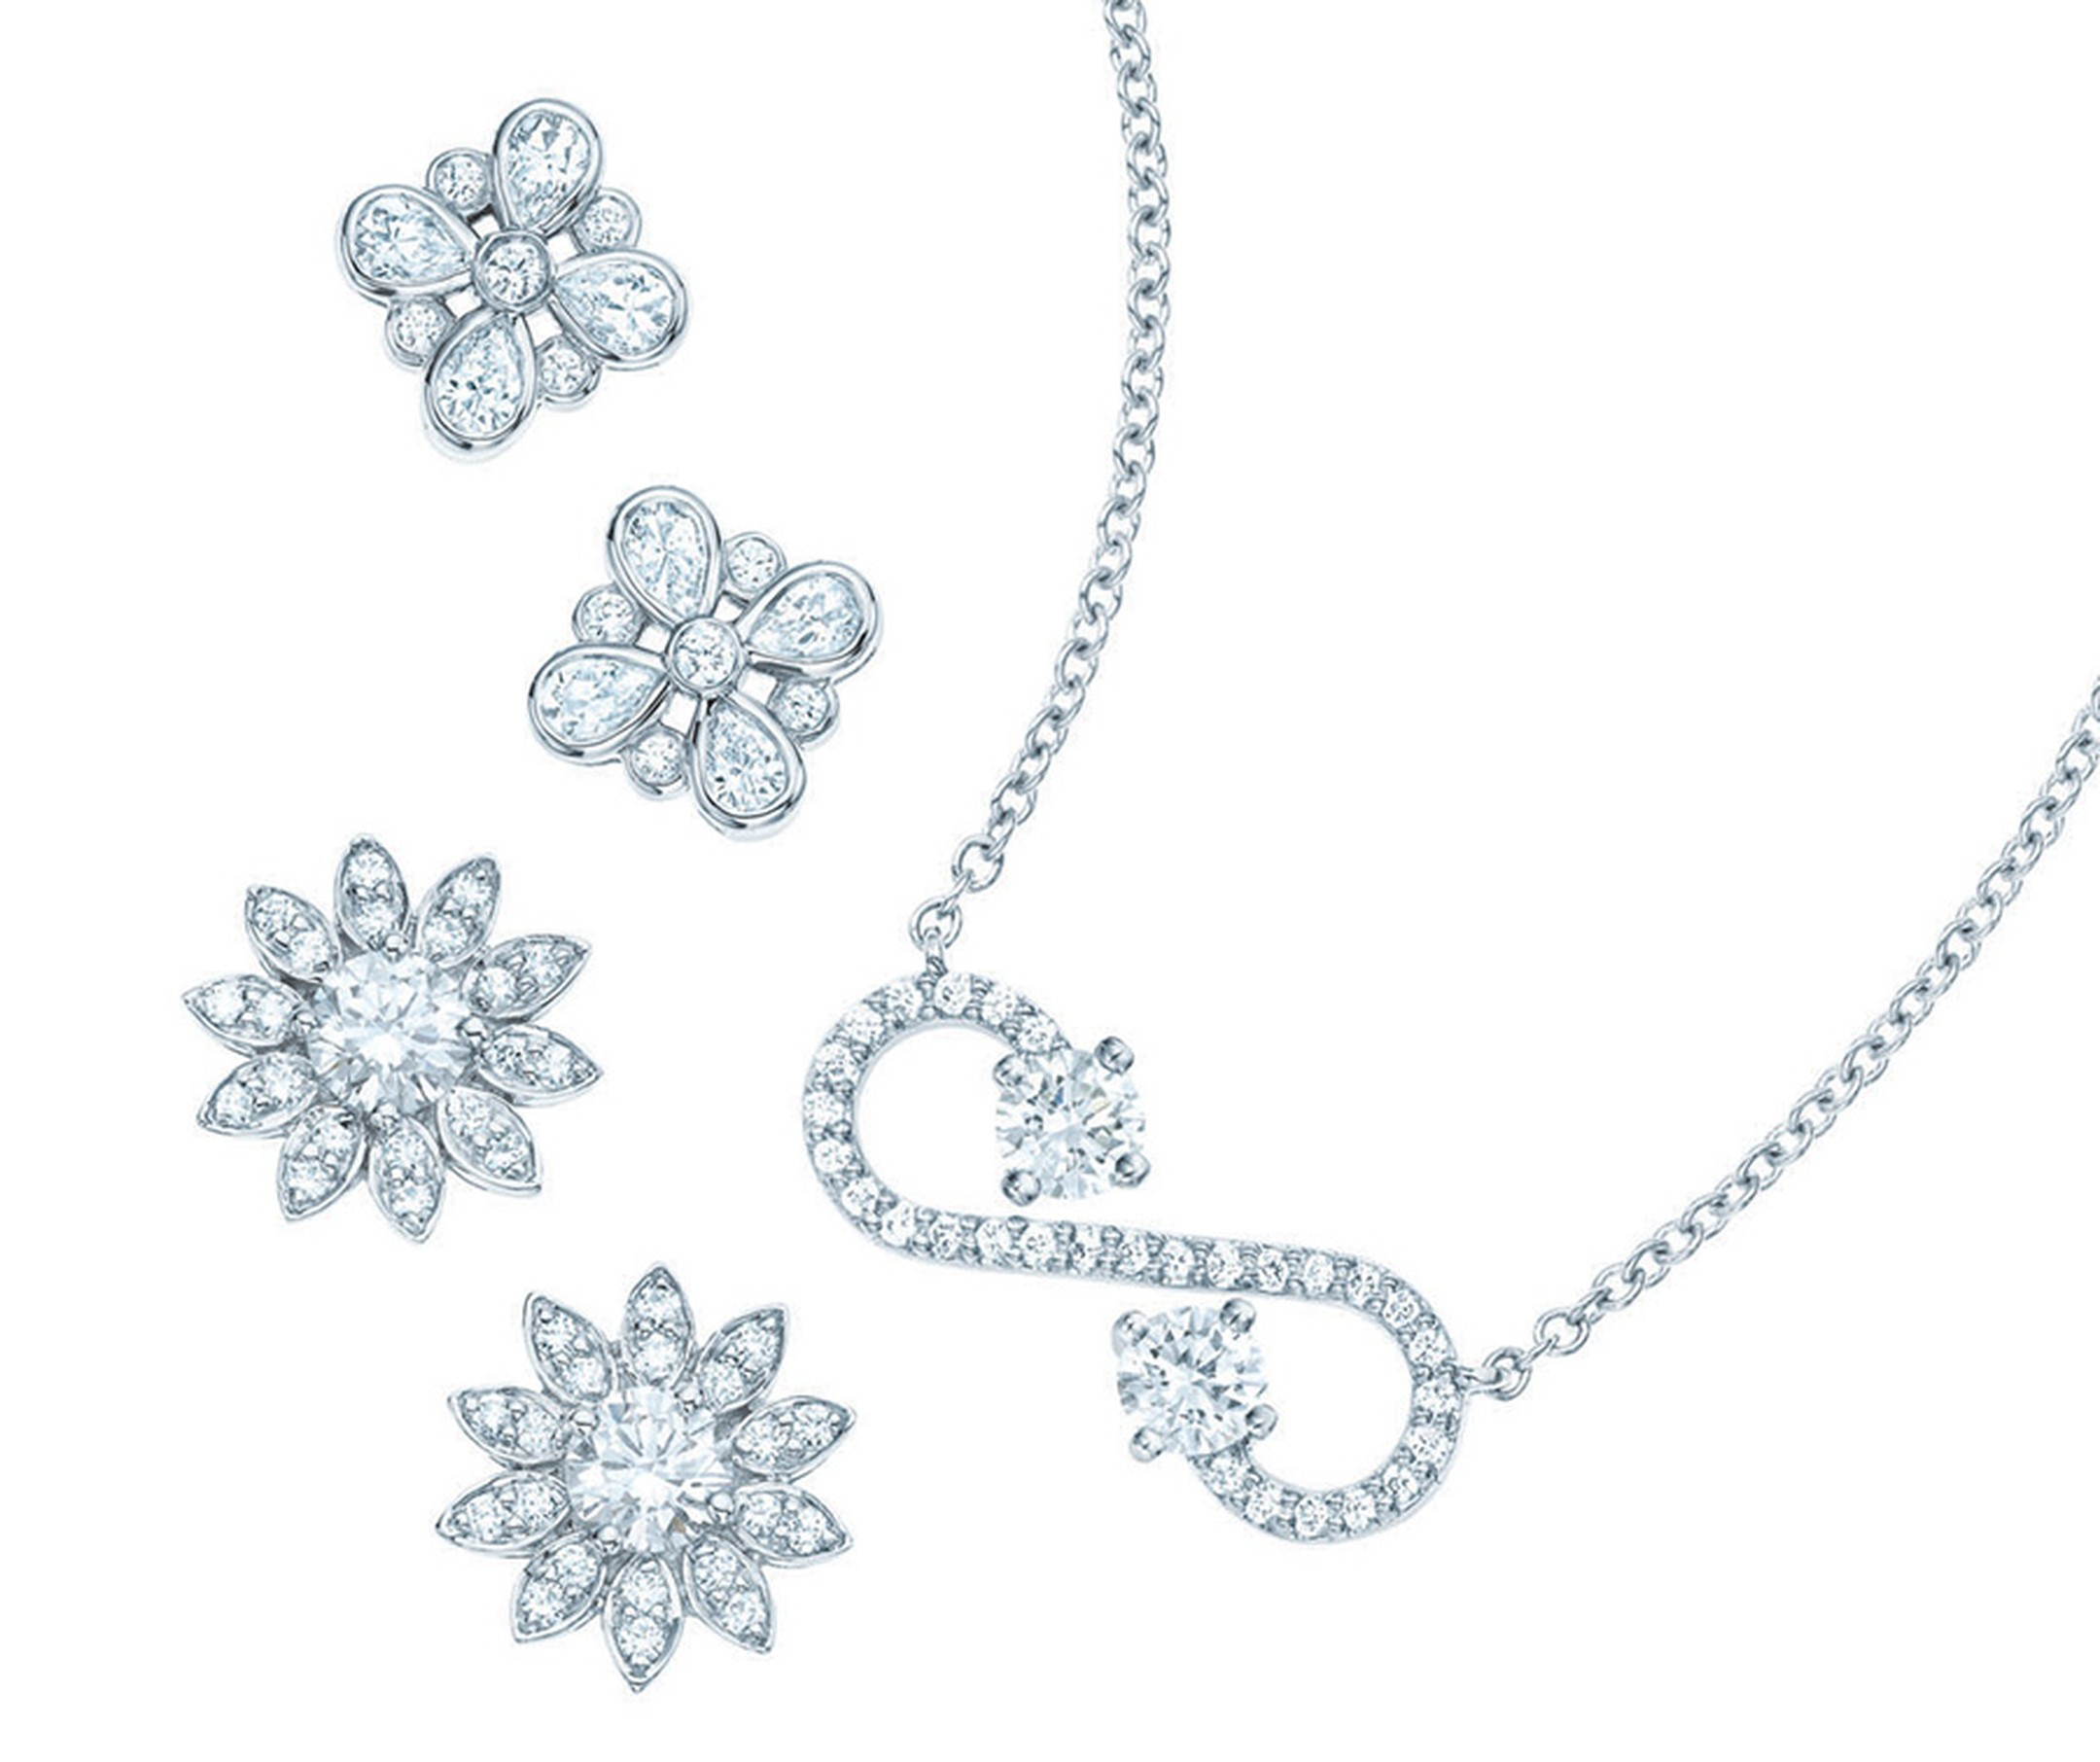 Tiffany-Enchant-scroll-pendant-and-earrings-with-diamonds-in-platinum